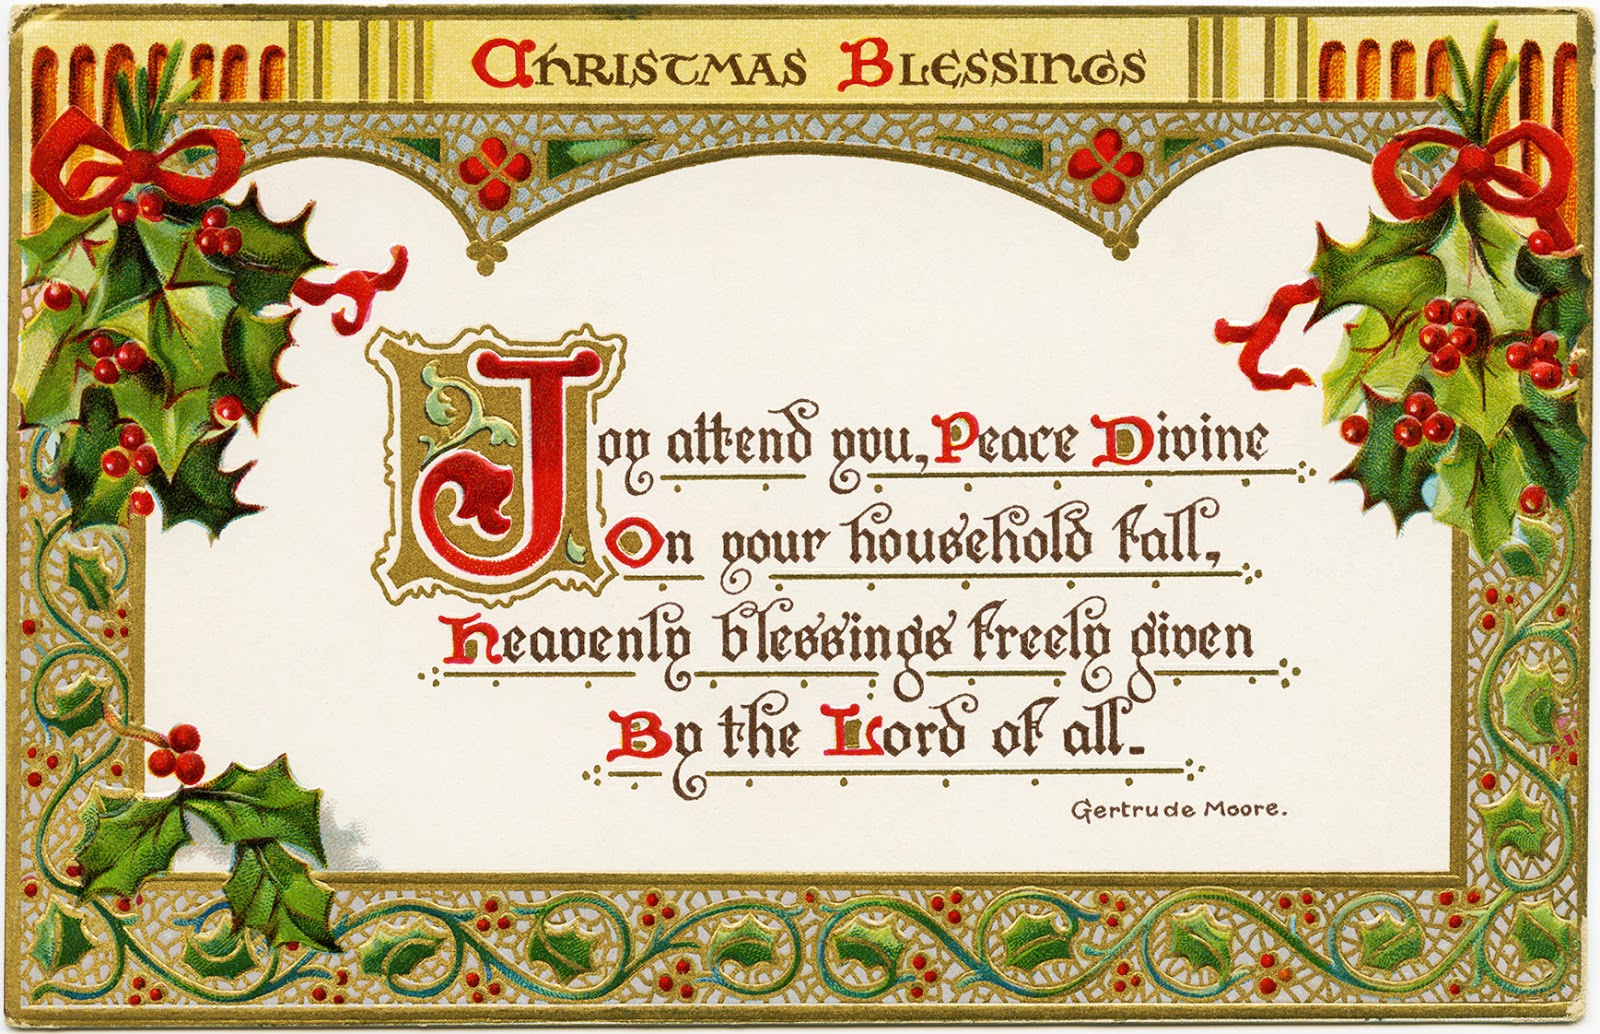 Free Printable Christian Christmas Greeting Cards – Festival Collections - Free Printable Christian Christmas Greeting Cards